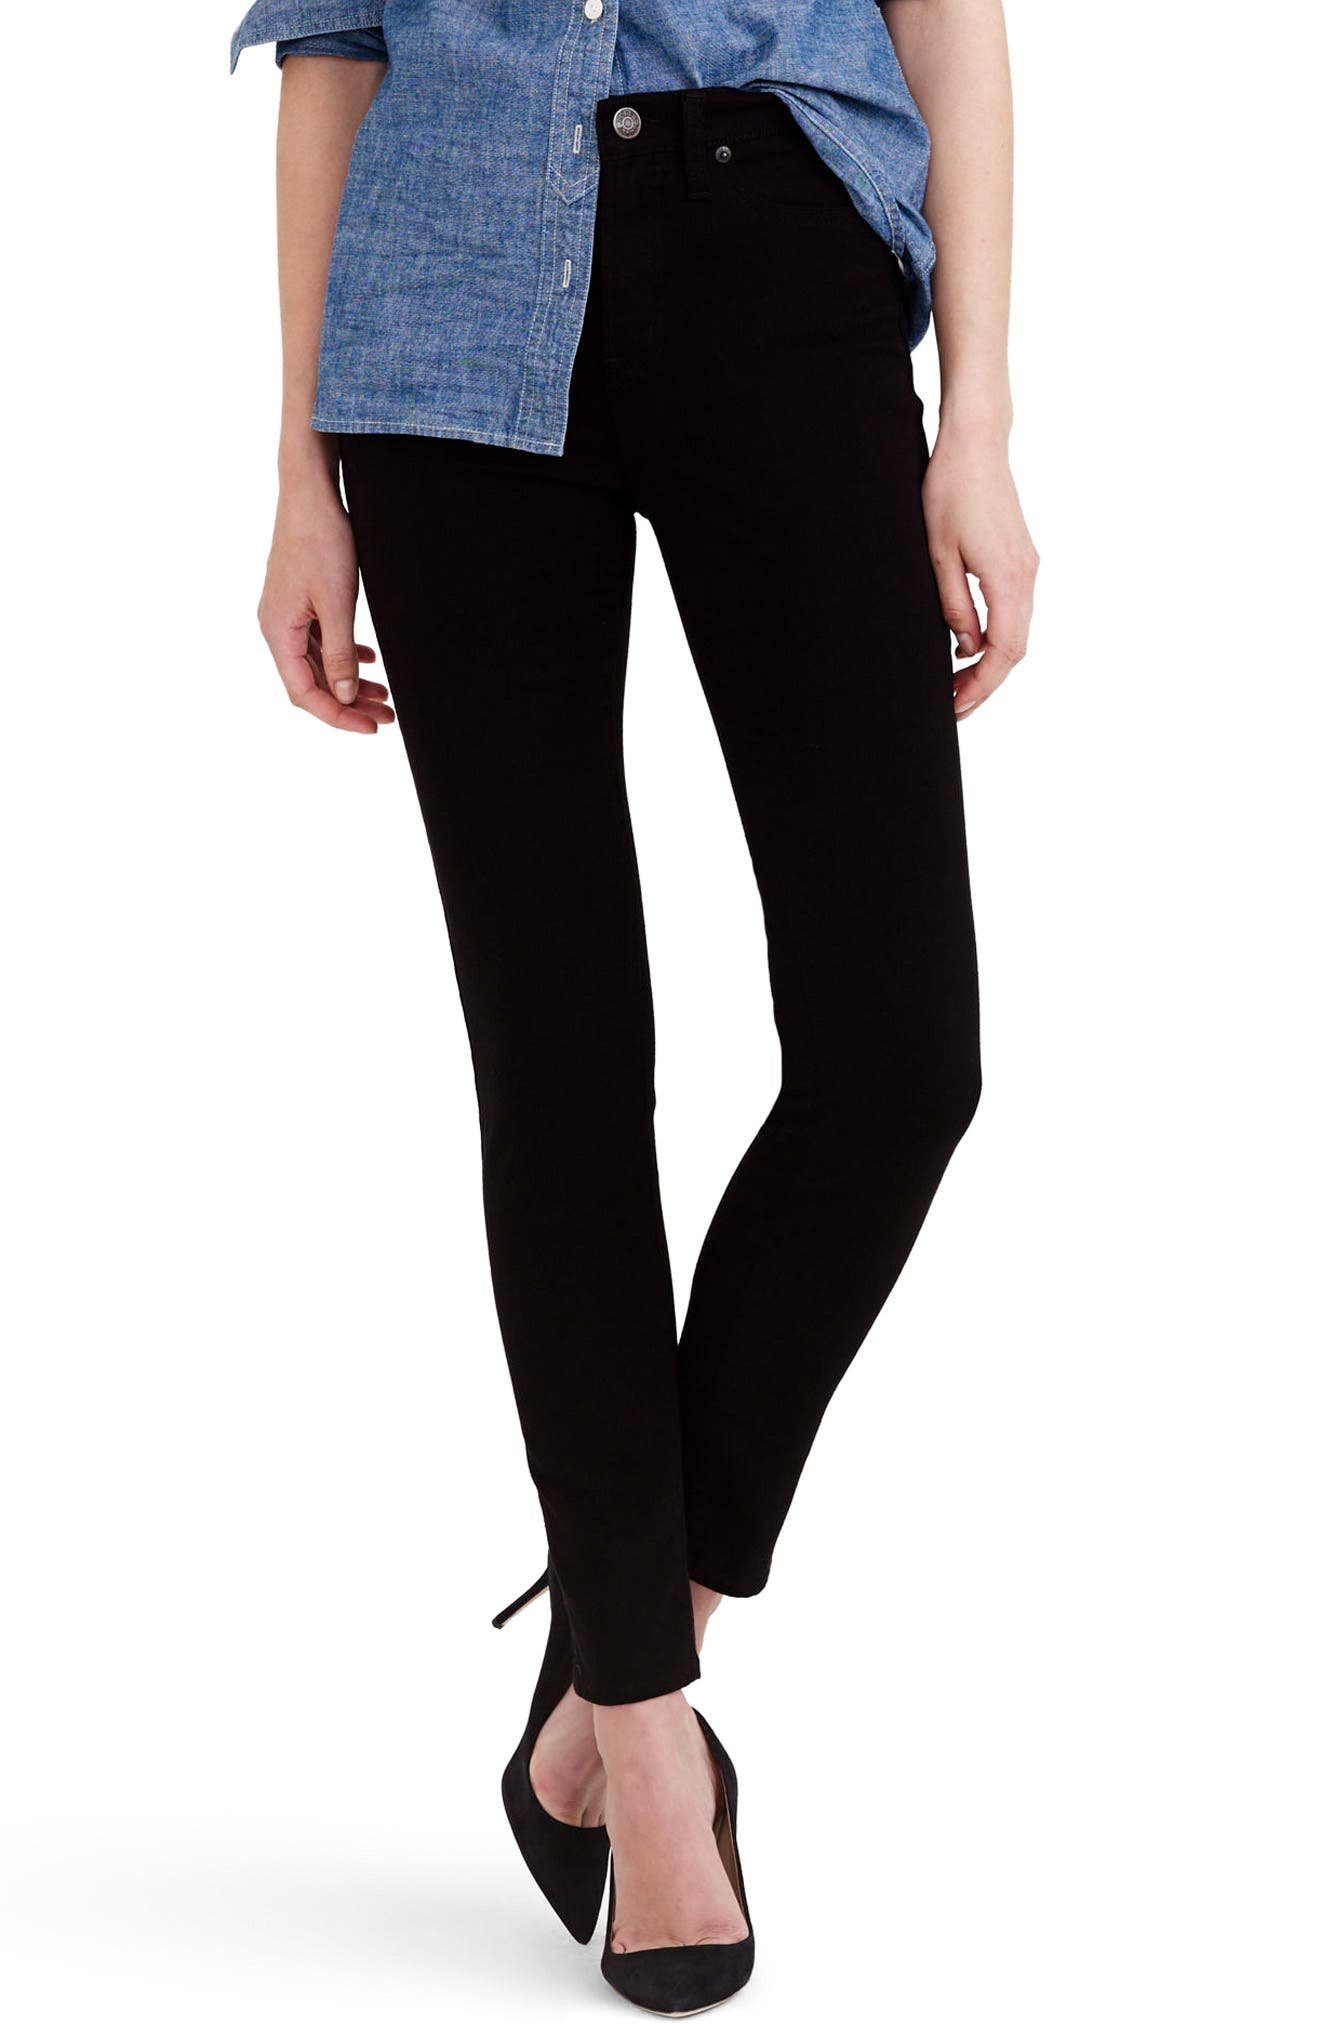 Alternate Image 1 Selected - J.Crew Lookout High Rise Jeans (Regular & Petite)